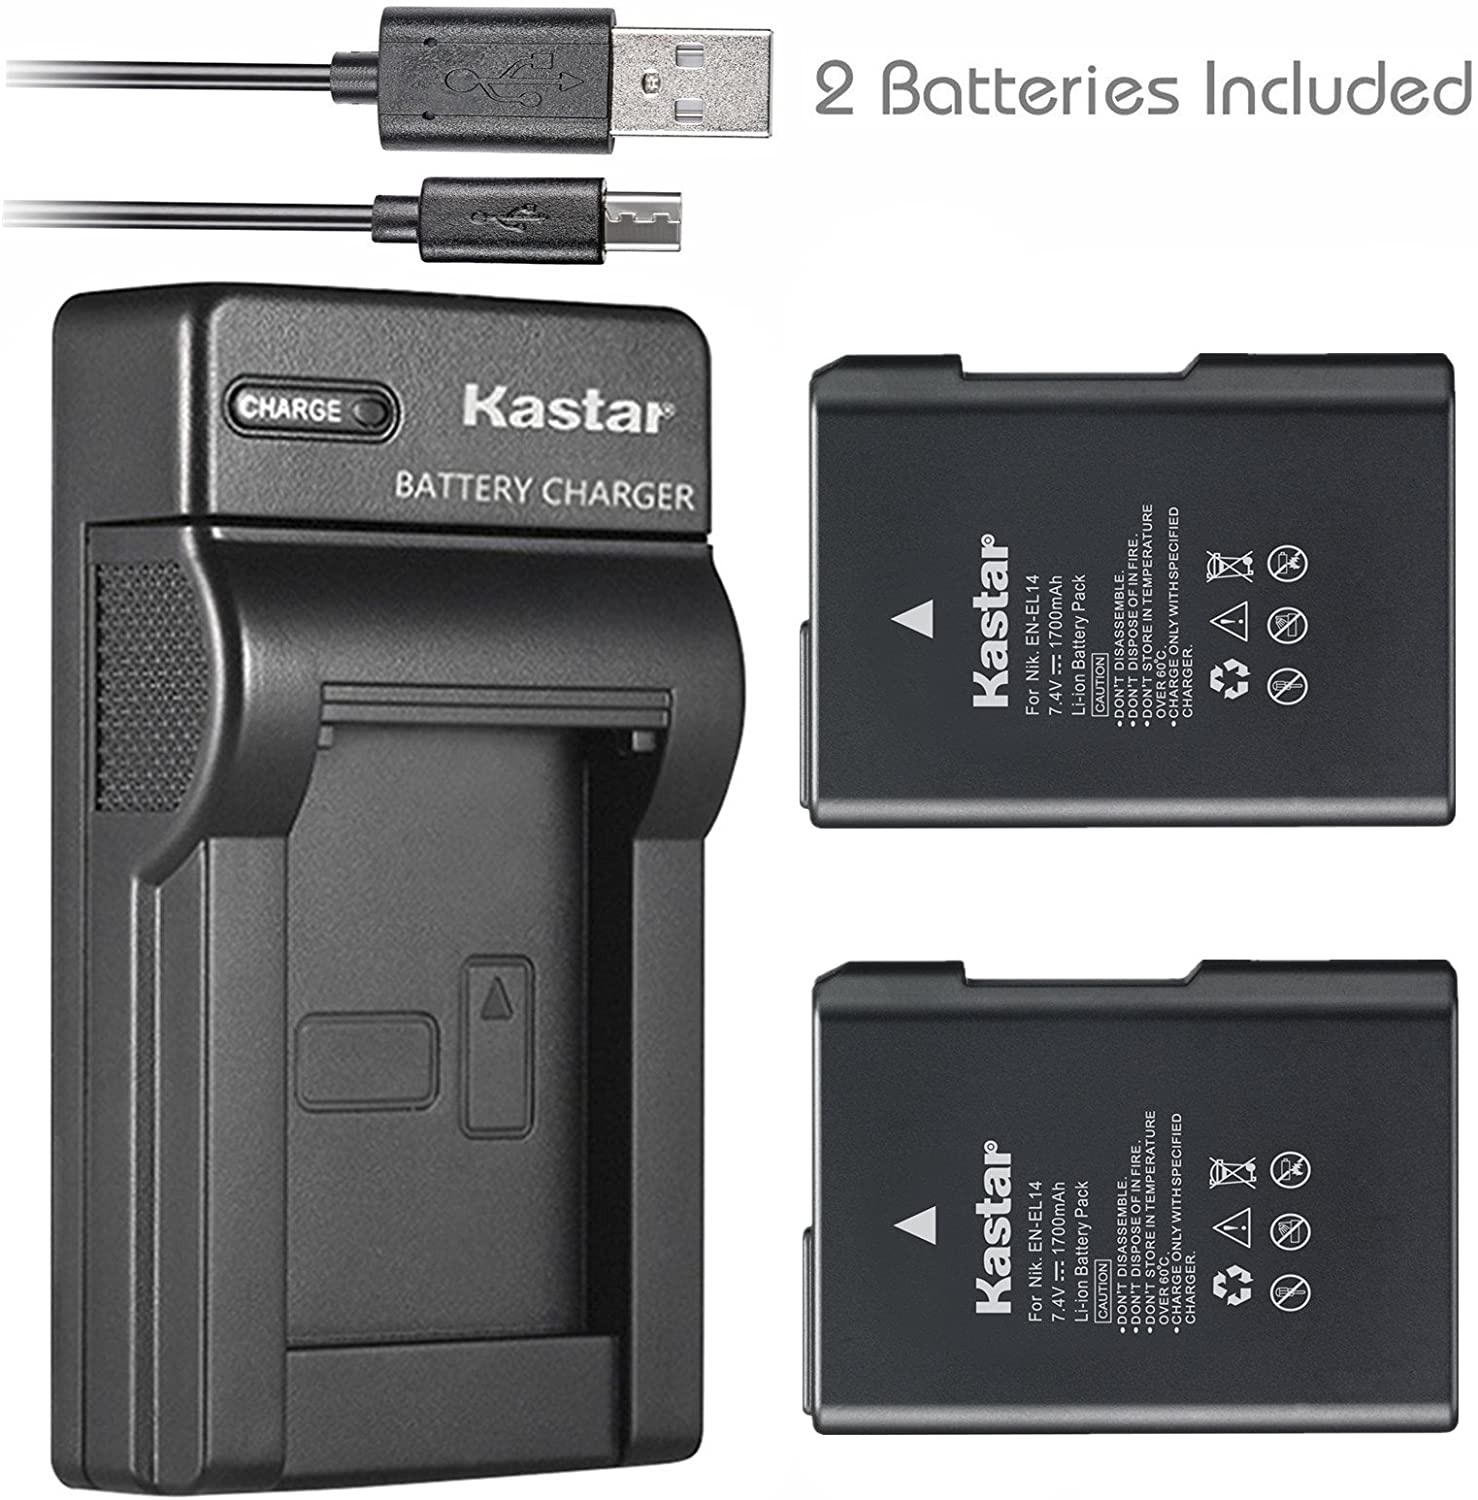 Kastar Battery (X2) & Slim USB Charger for Nikon EN-EL14, EN-EL14a, ENEL14, MH-24 and Nikon Coolpix P7000 P7100 P7700 P7800, D3100, D3200, D3300, D3400, D5100, D5200, D5300 DSLR, Df DSLR, D5600 Camera